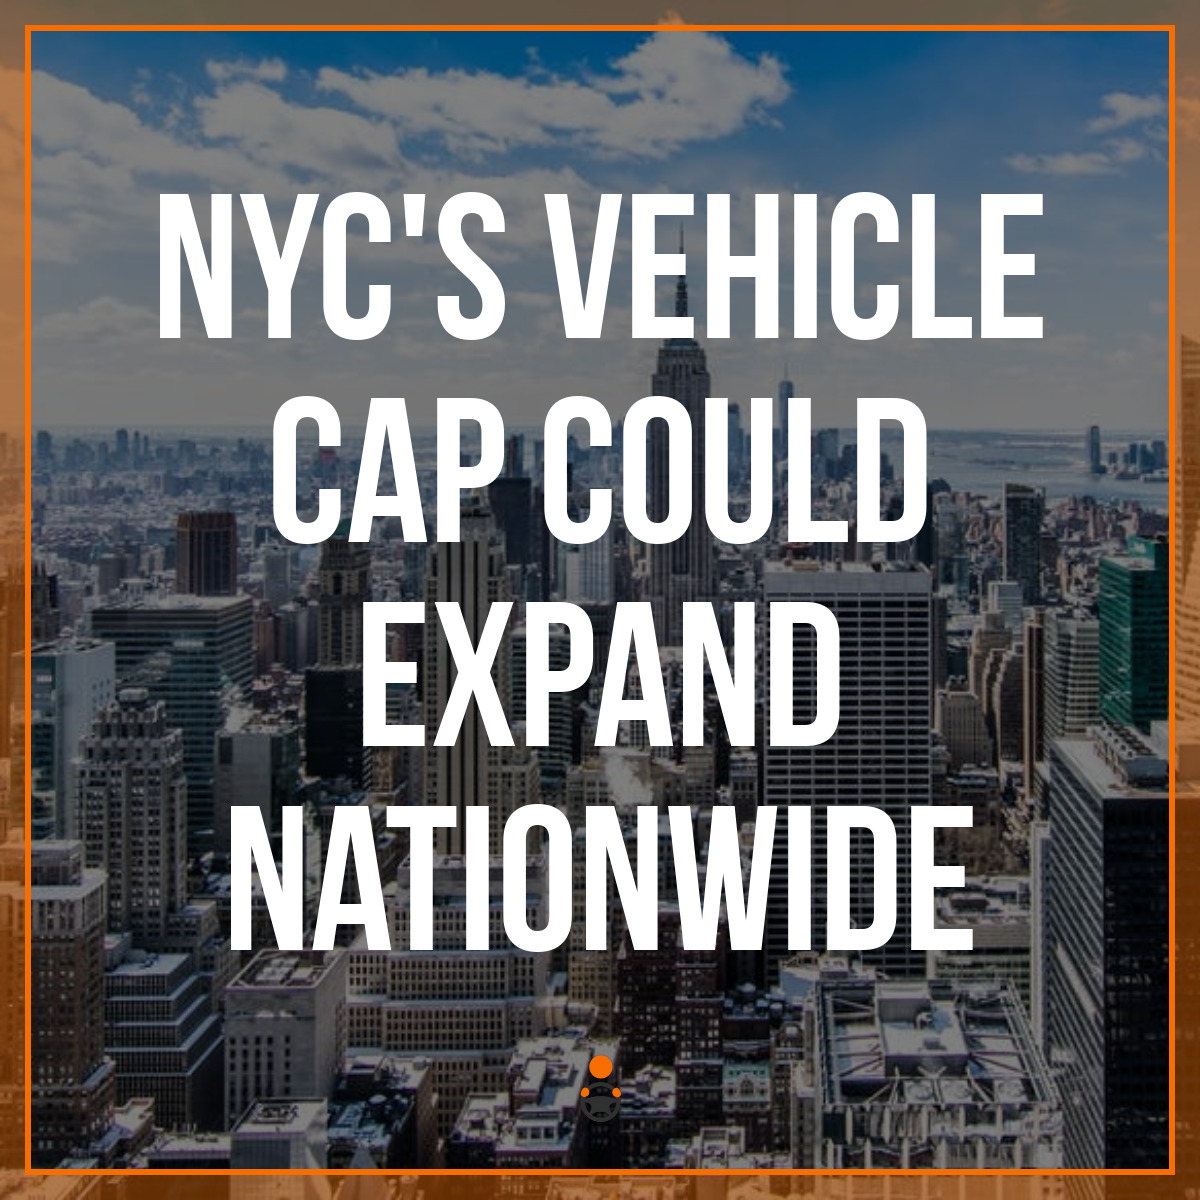 NYC's Vehicle Cap Could Expand Nationwide